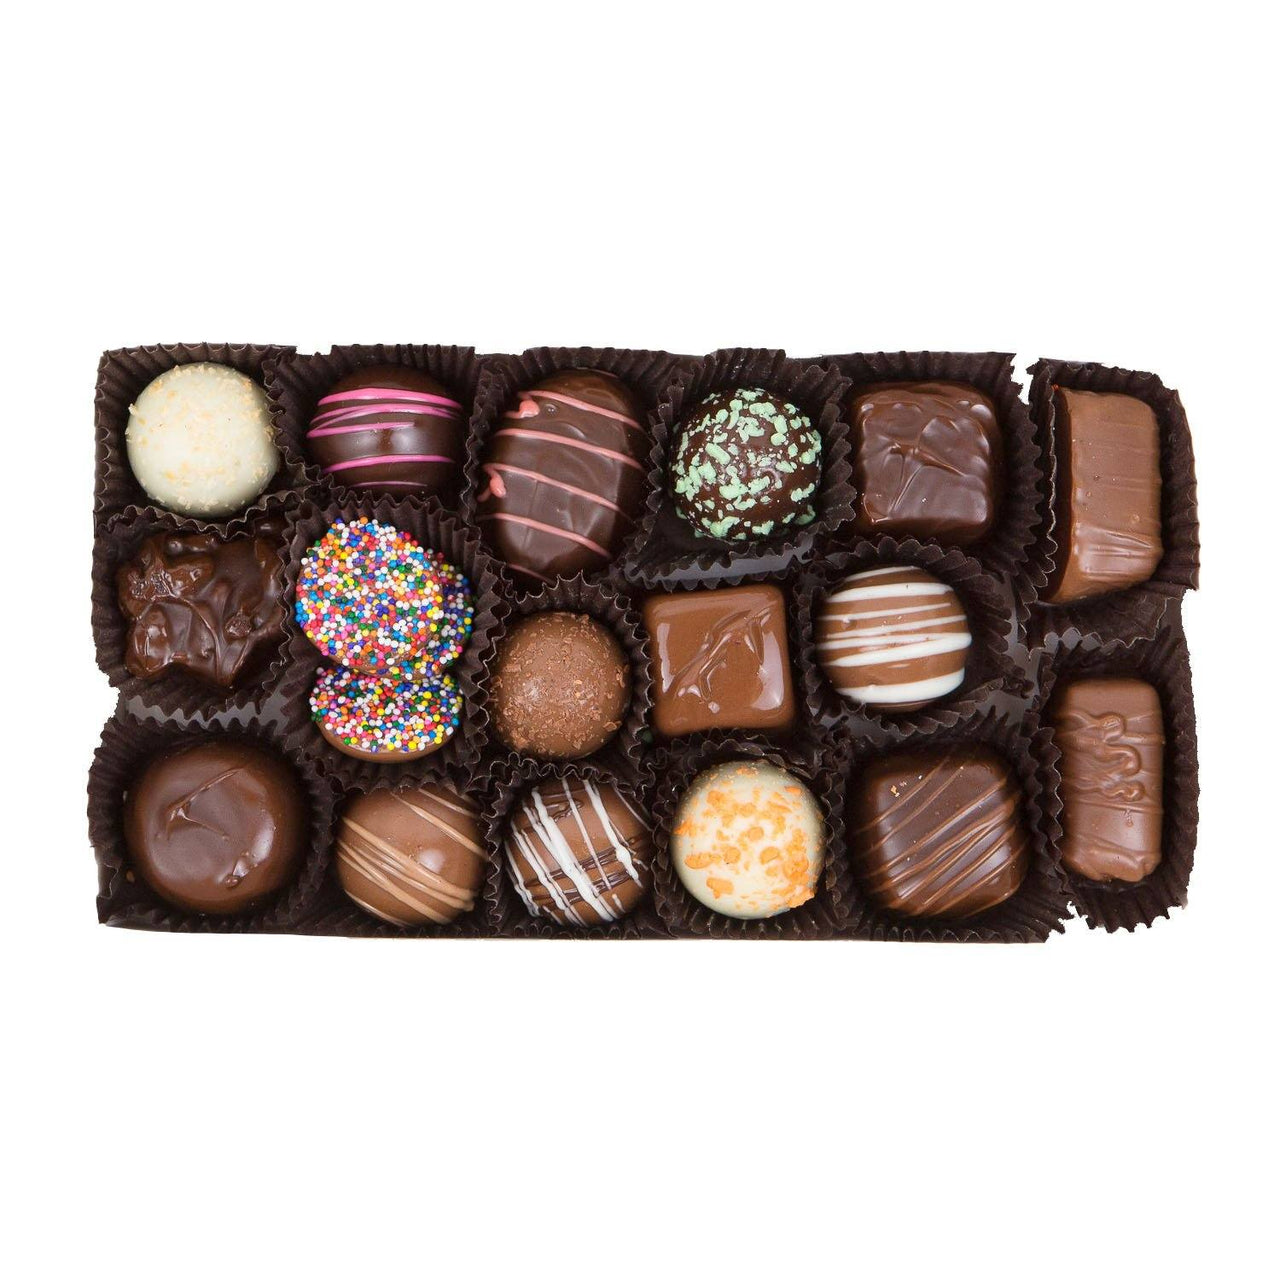 Gifts for Women - Assorted Chocolate Gift Box - Jackie's Chocolate (1487115681827)